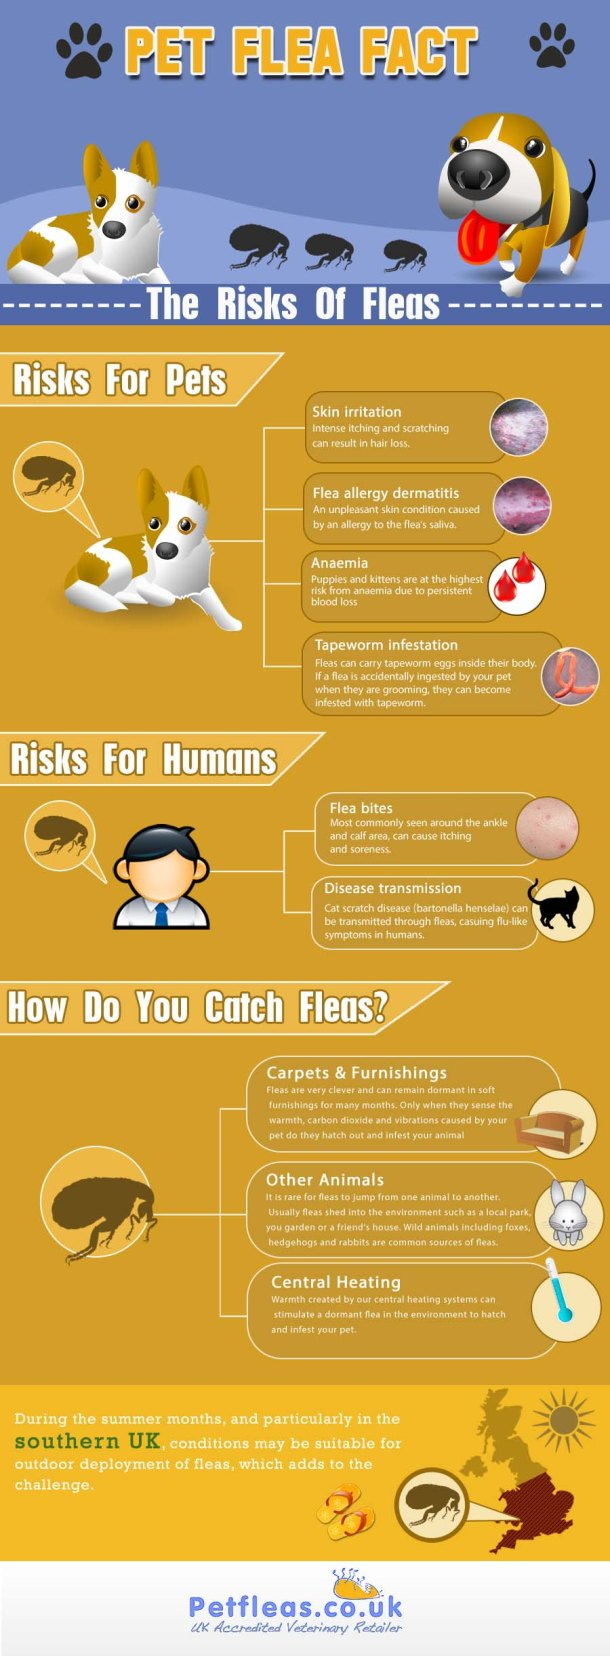 Pet Flea Facts File The Risks Of Fleas